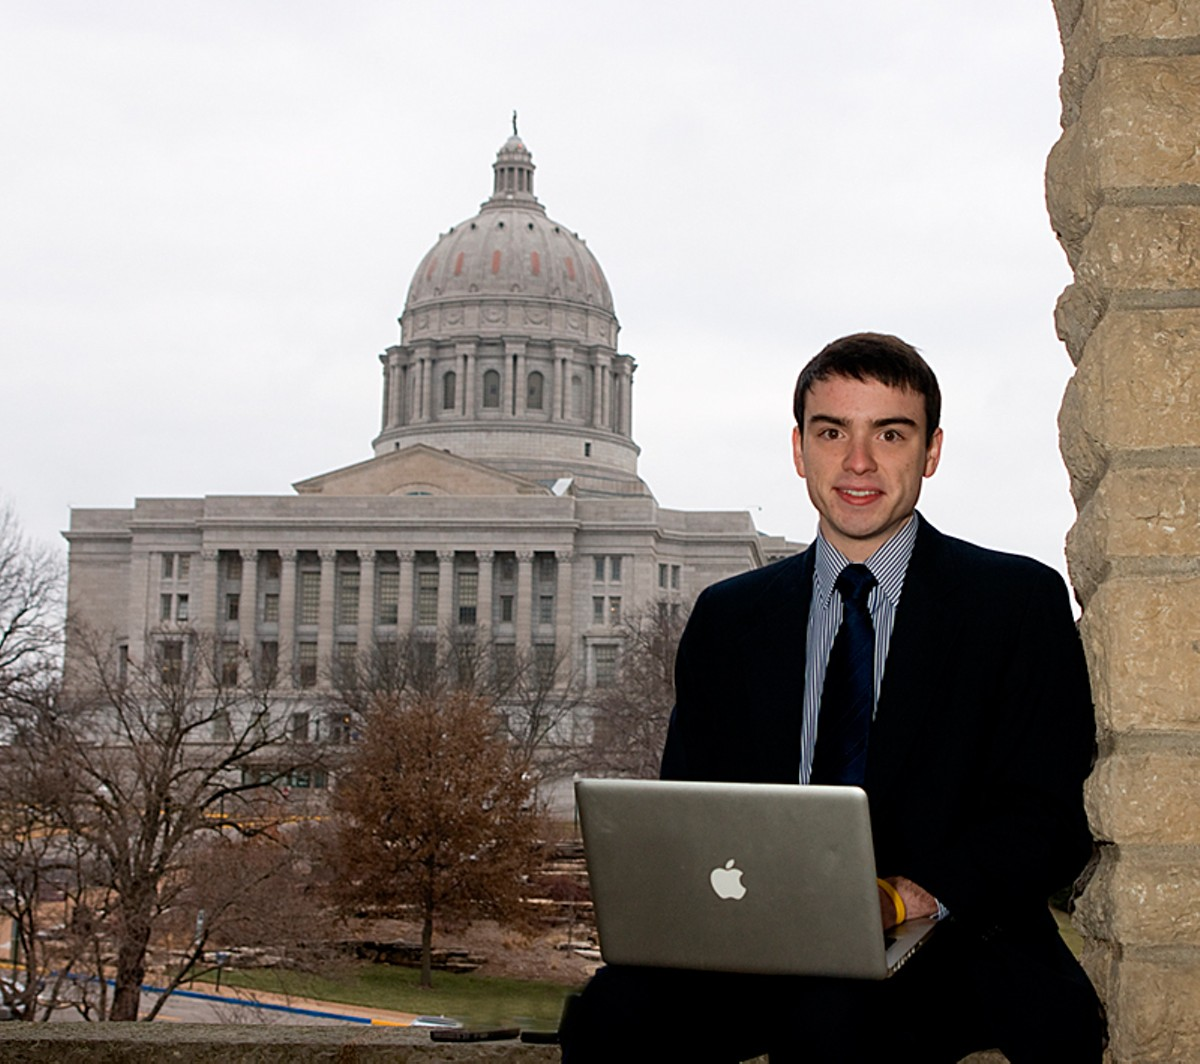 Best Political Blog blogger Eli Yokley. Read a profile of Yokley here.